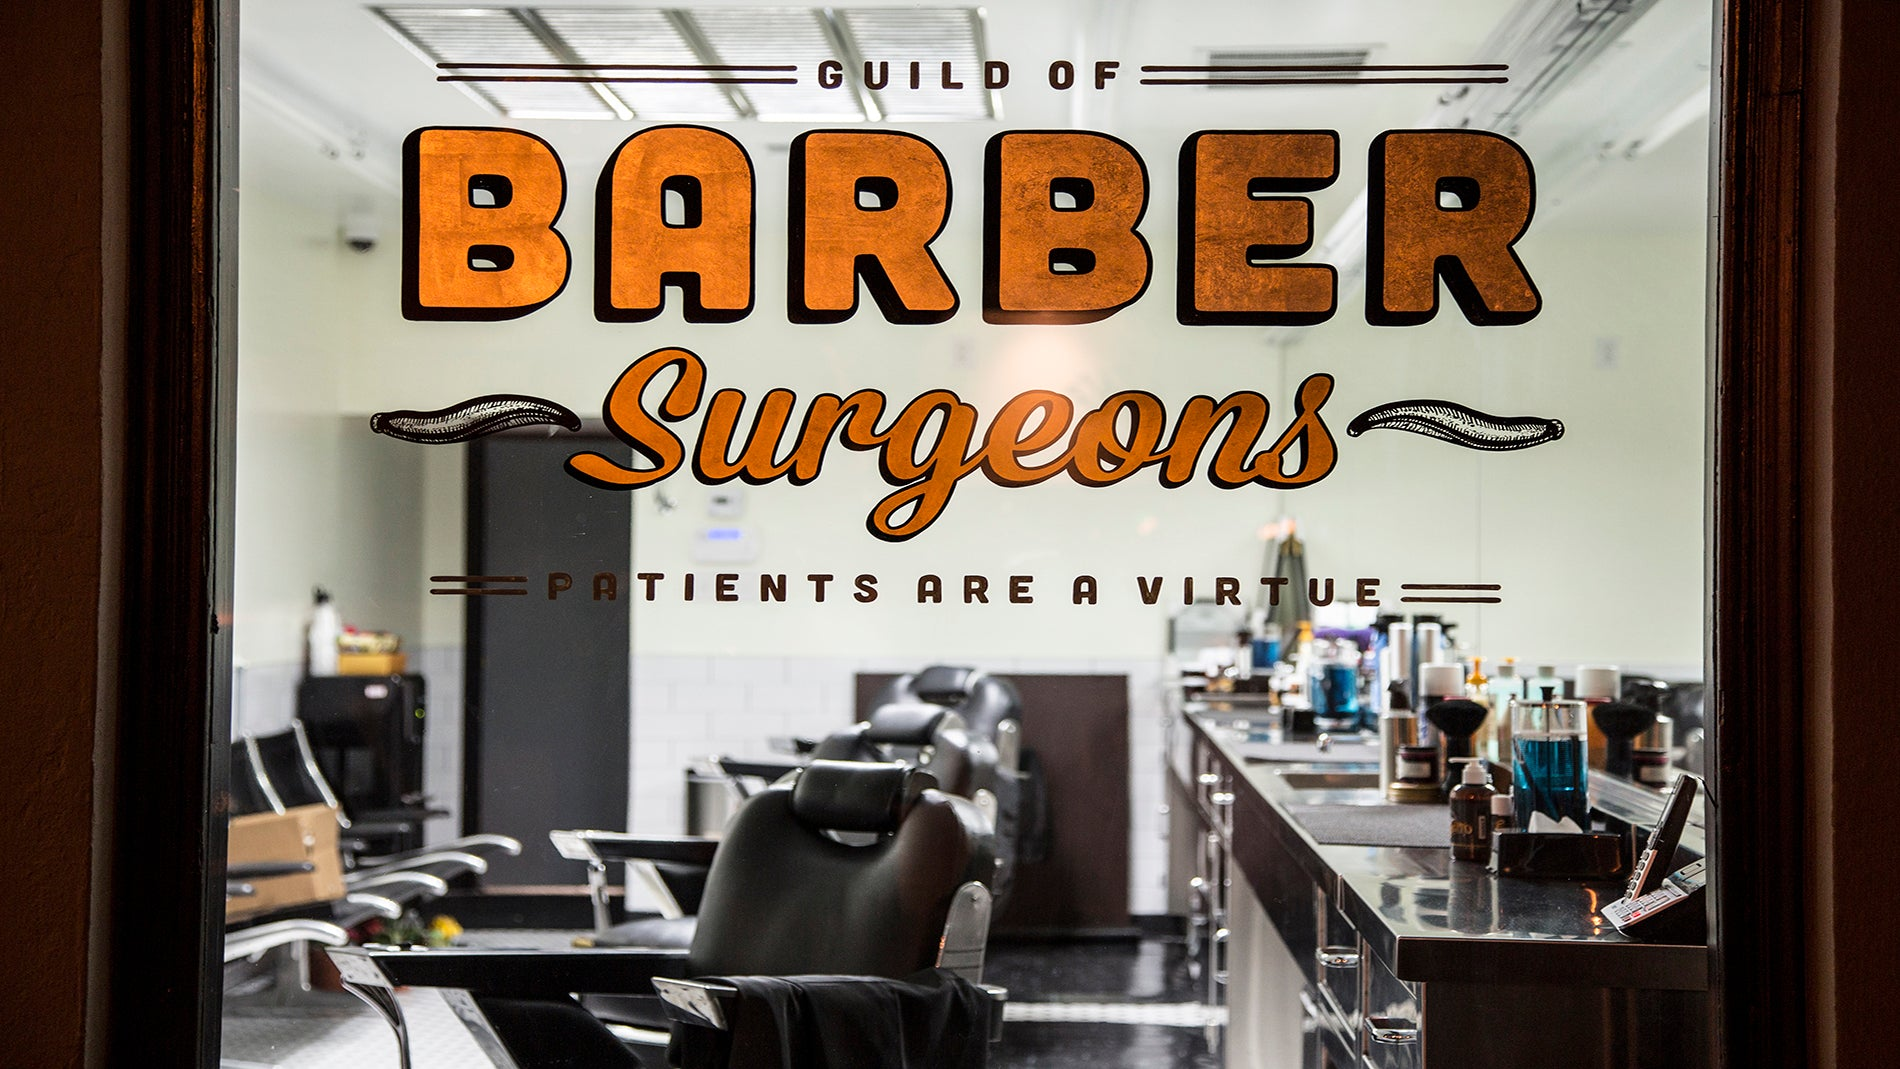 A look through the window of Barber Surgeons